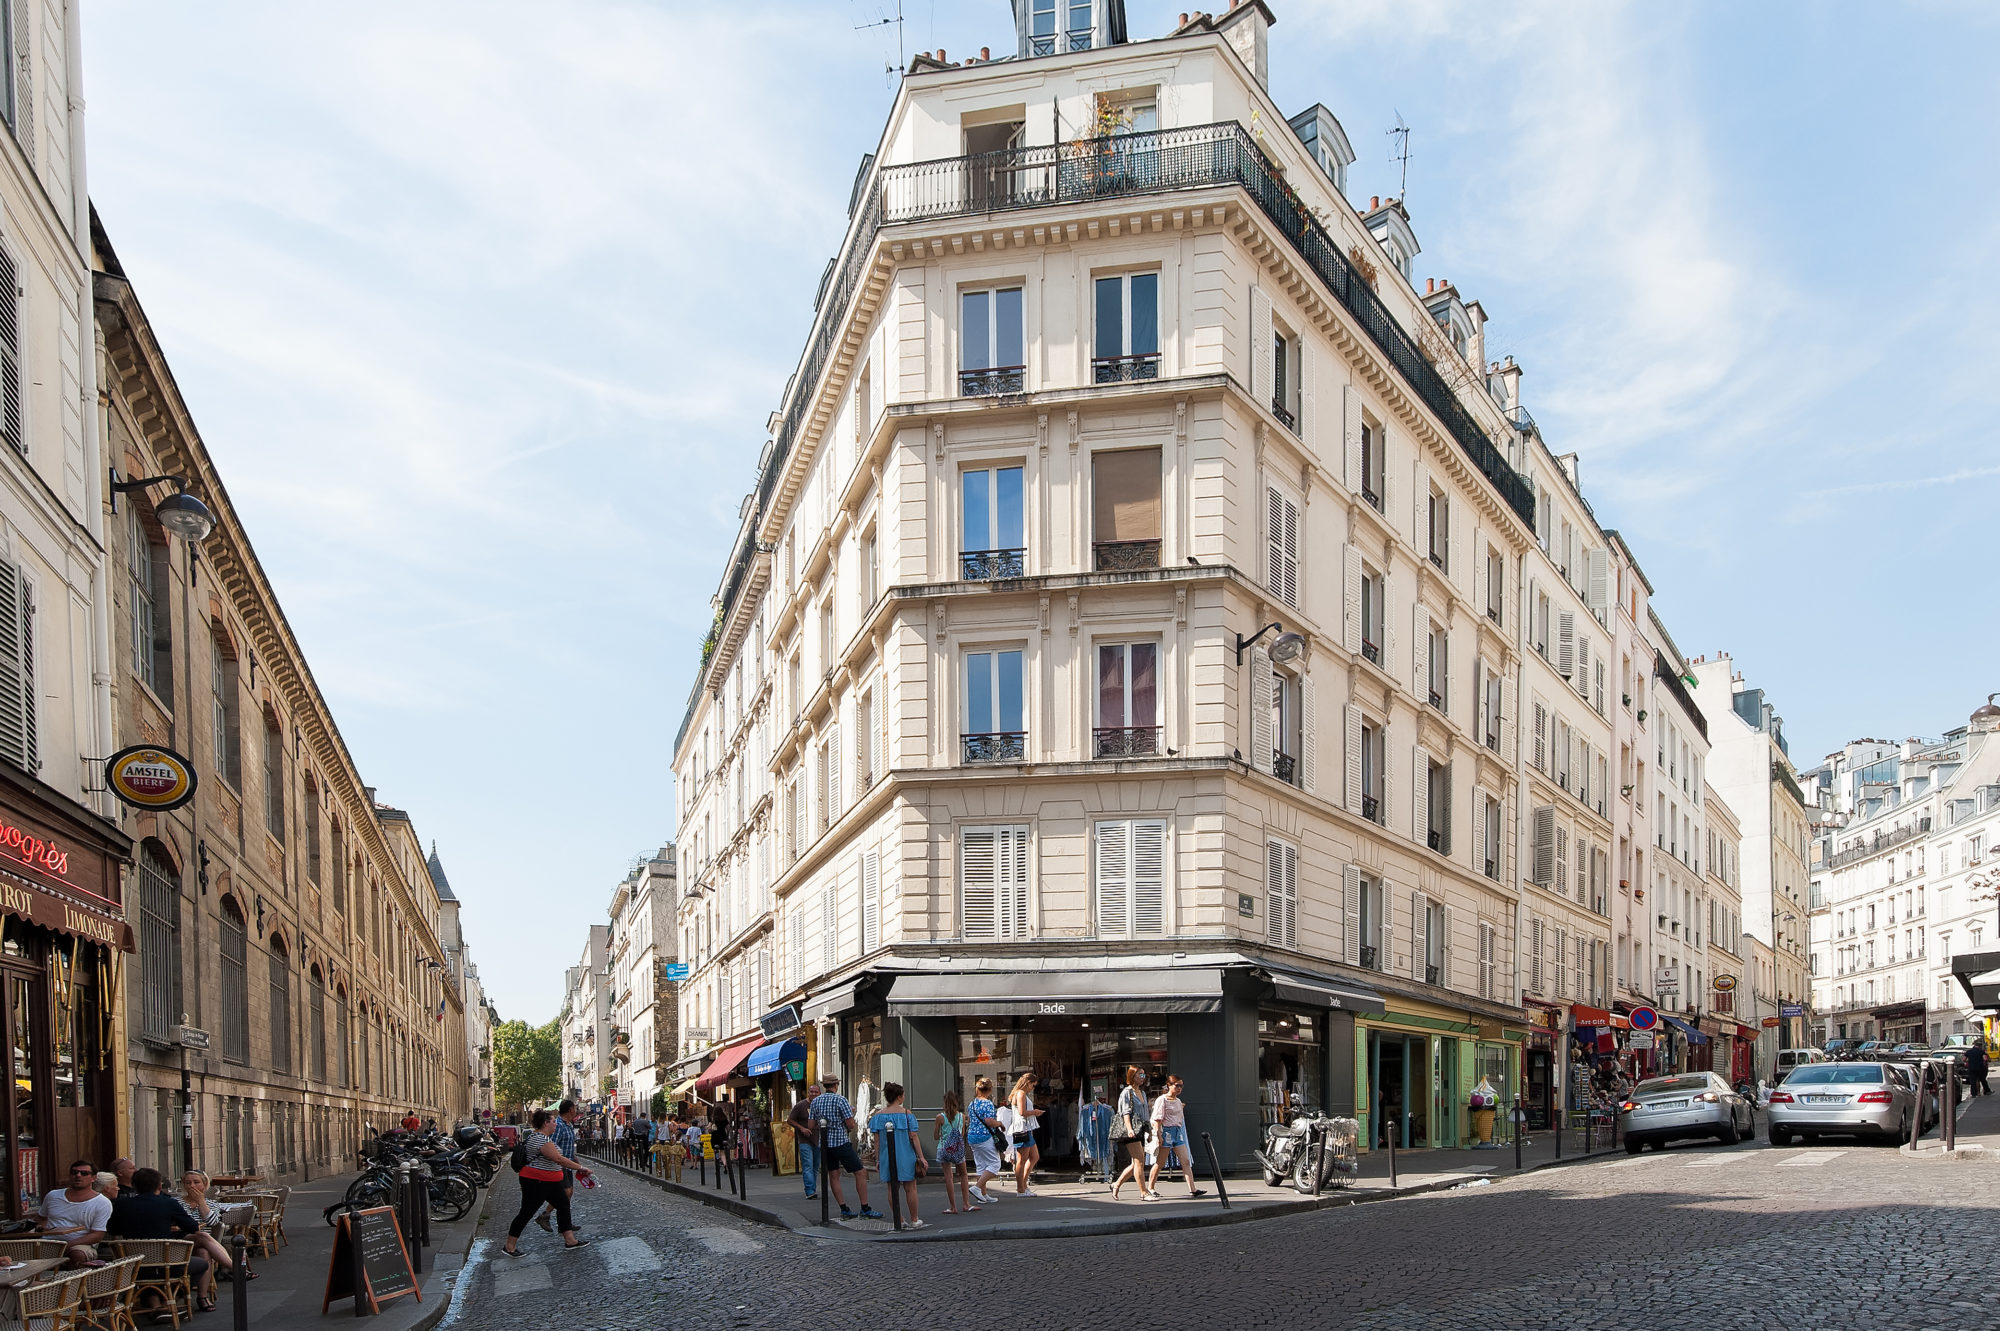 A street forking around  cream-colored iron-shaped building in Paris in summer, with people outside enjoying the sunshine.